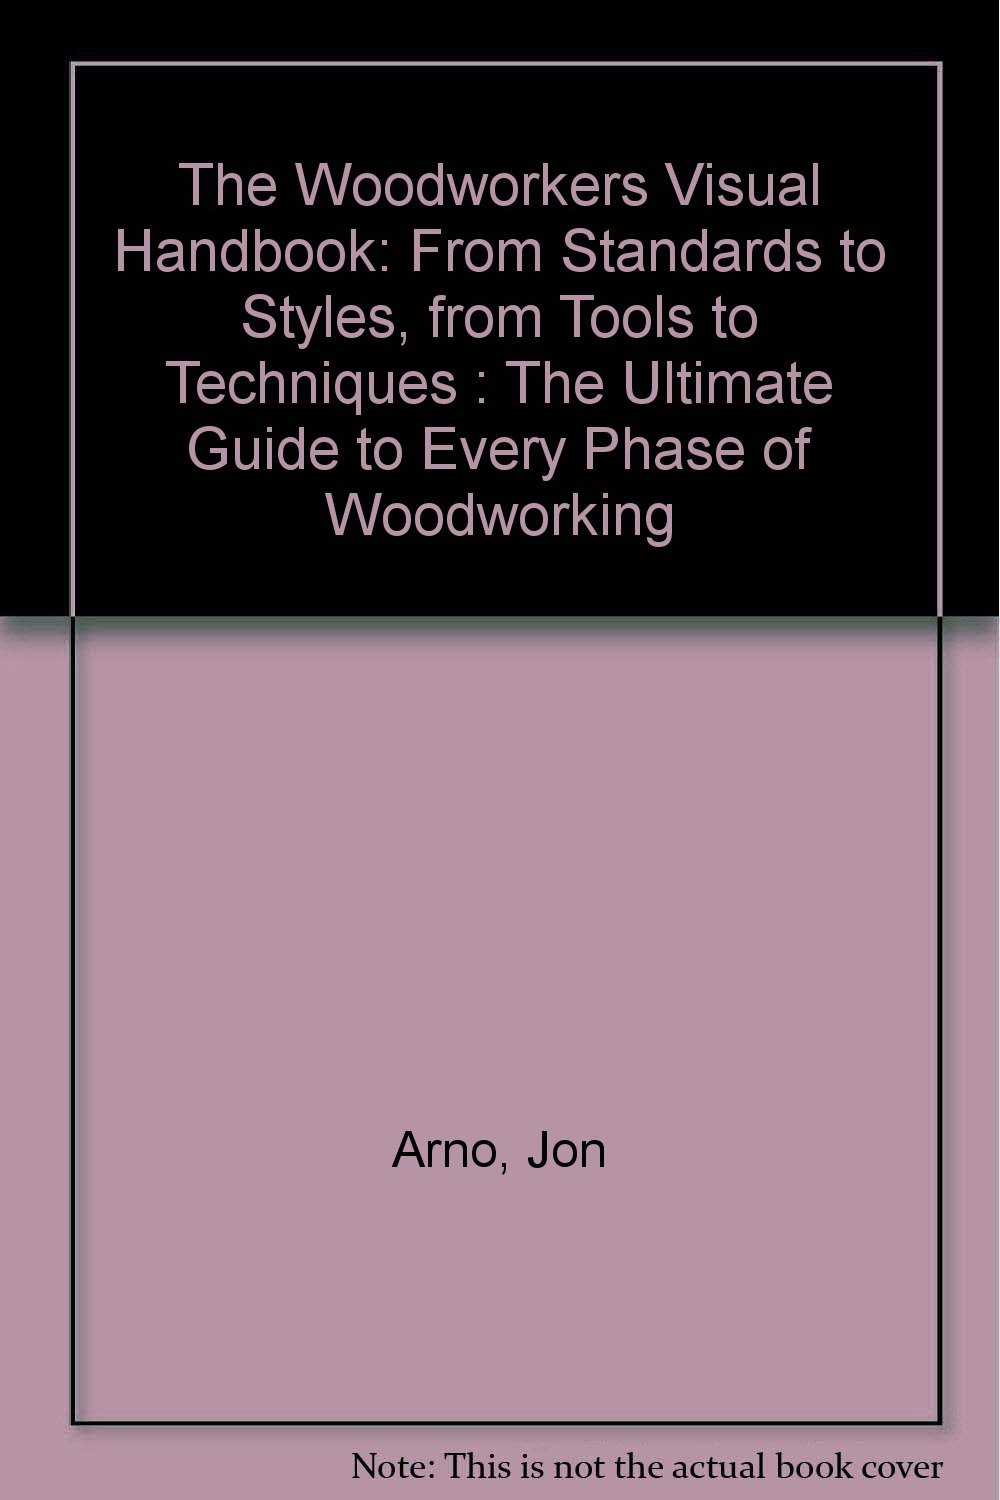 The Woodworkers Visual Handbook: From Standards to Styles, from Tools to Techniques : The Ultimate Guide to Every Phase of Woodworking